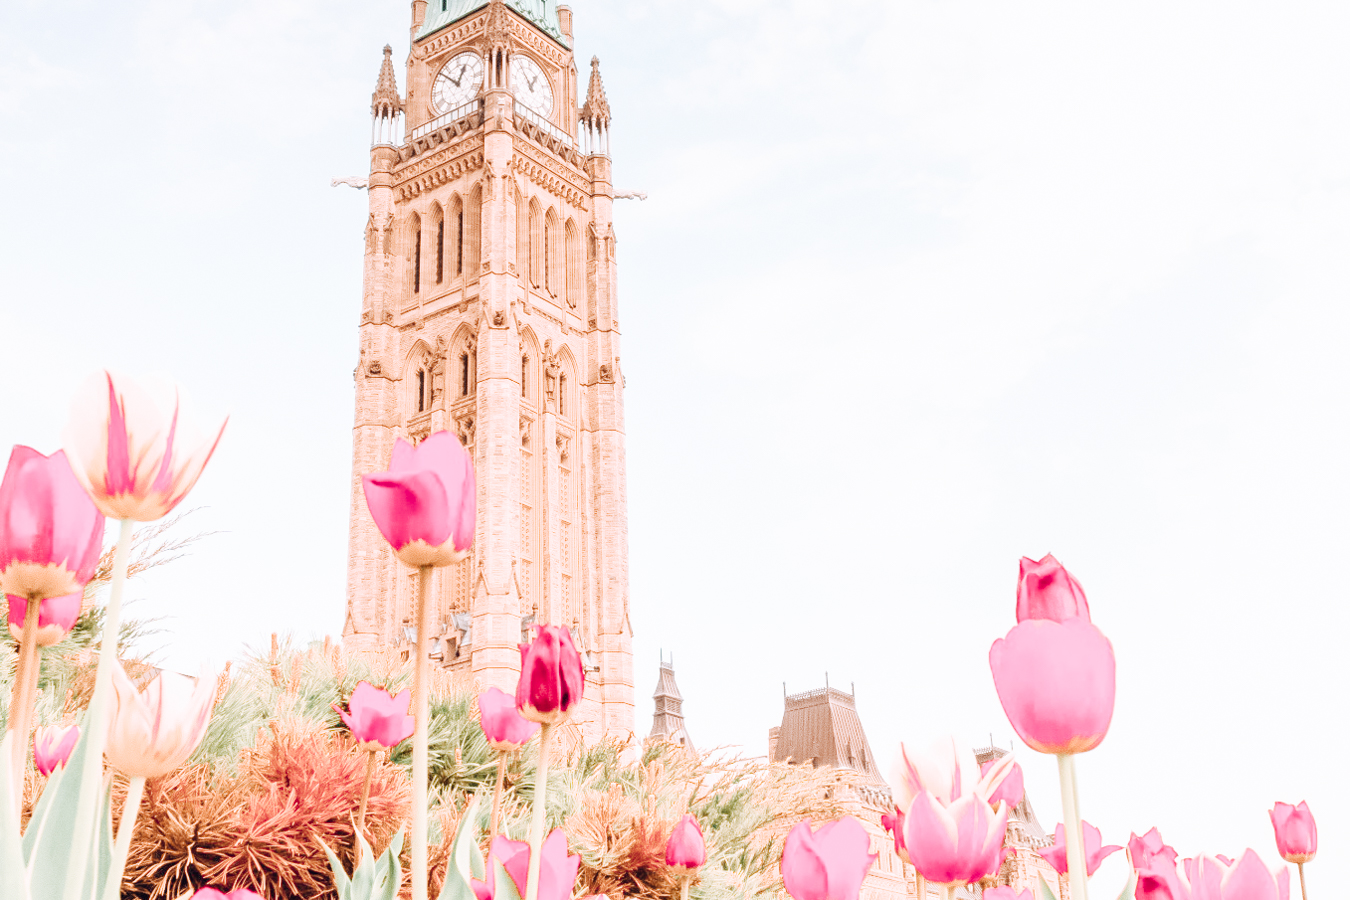 Building and flowers in Ottawa